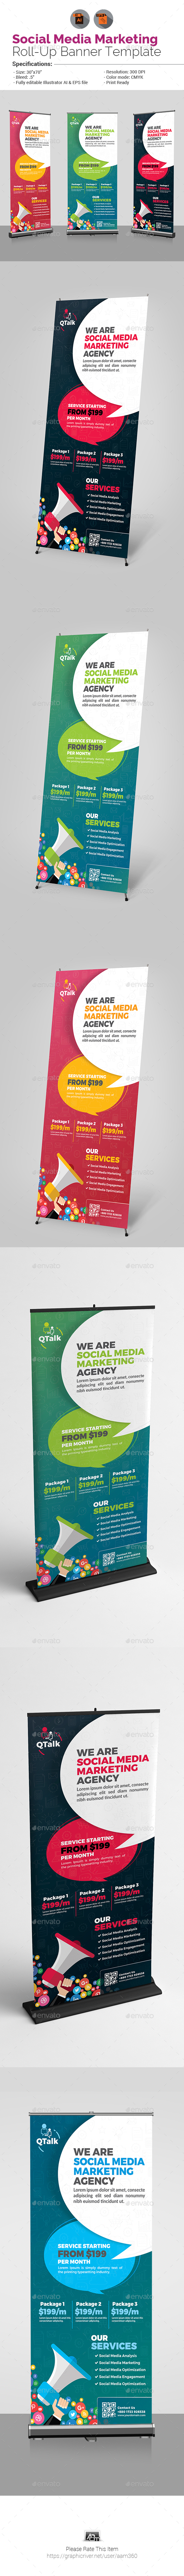 Social Media Marketing Roll Up Banner Template - Signage Print Templates